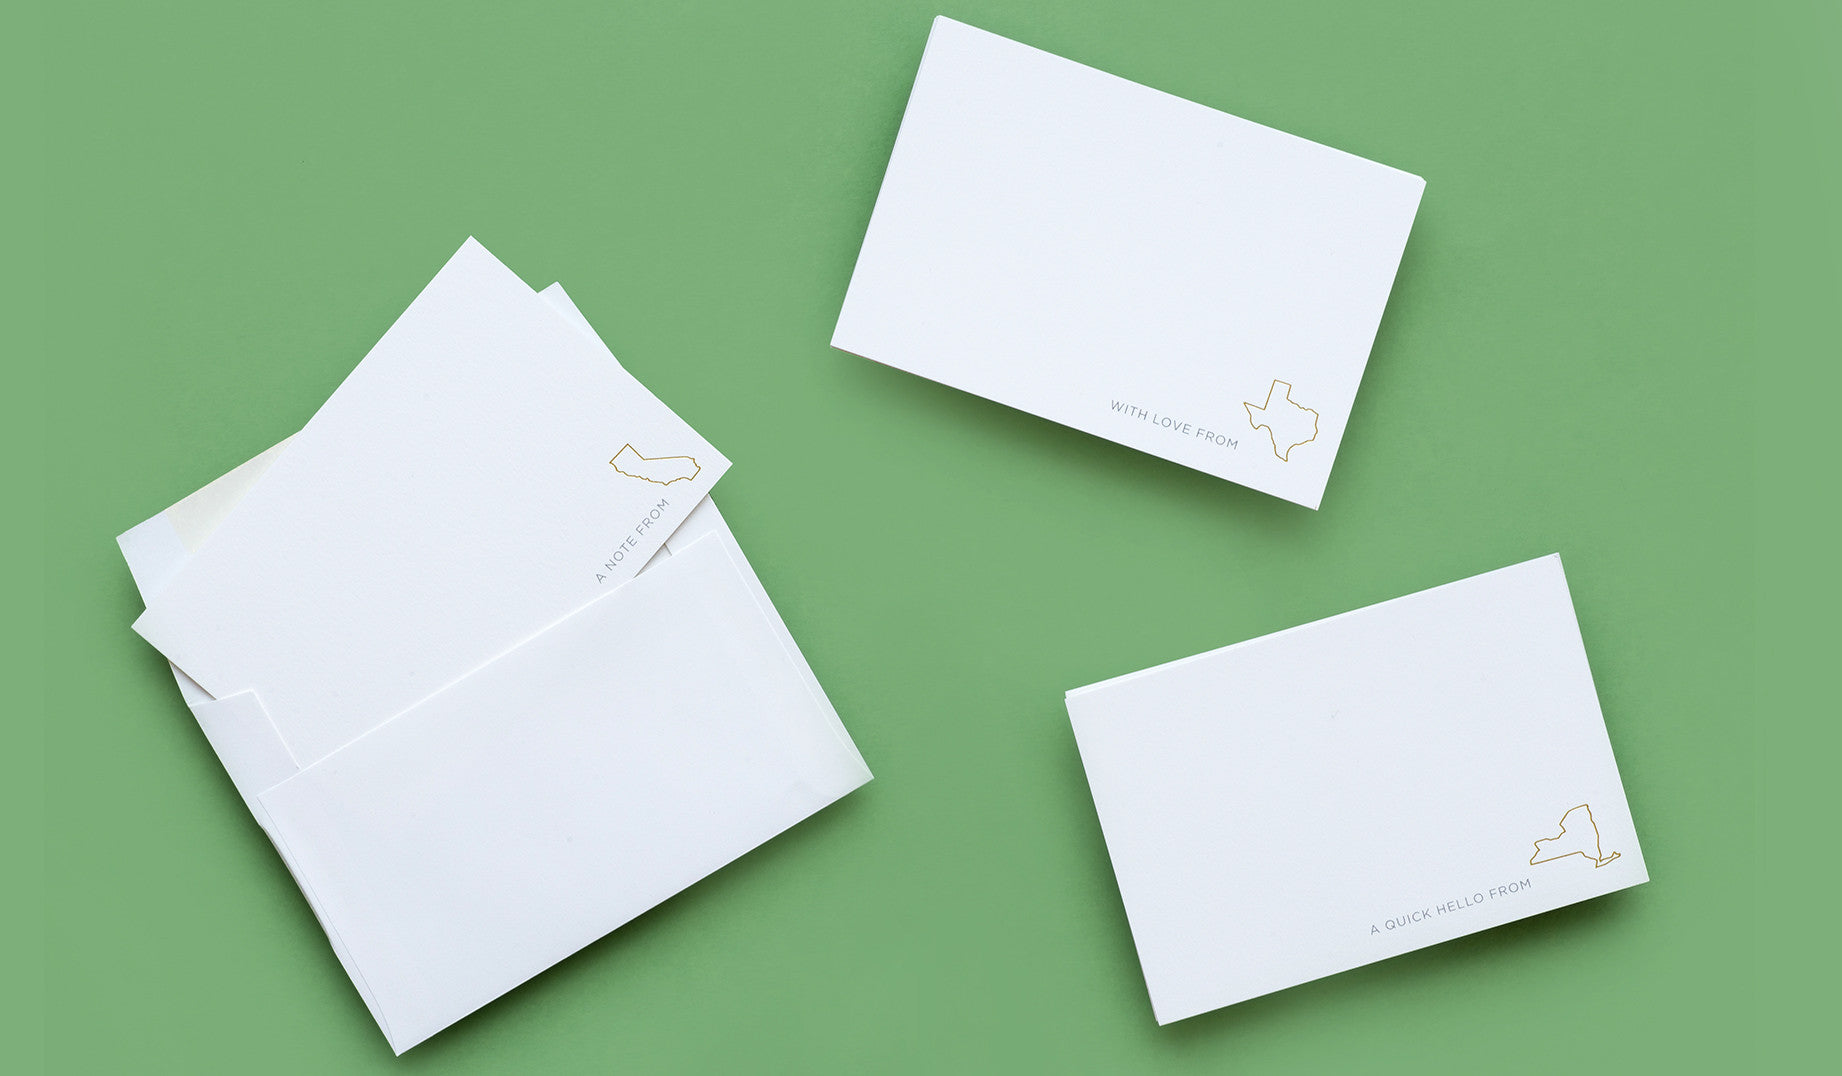 Introducing the State Series by jeweler Maya Brenner. Choose from three states stamped in rich gold foil onto our signature, double-thick eggshell card stock and bundled with matching envelopes. Create classic correspondence on these elegant cards to remind their recipients that it ain't where you're from, it's where you're at.